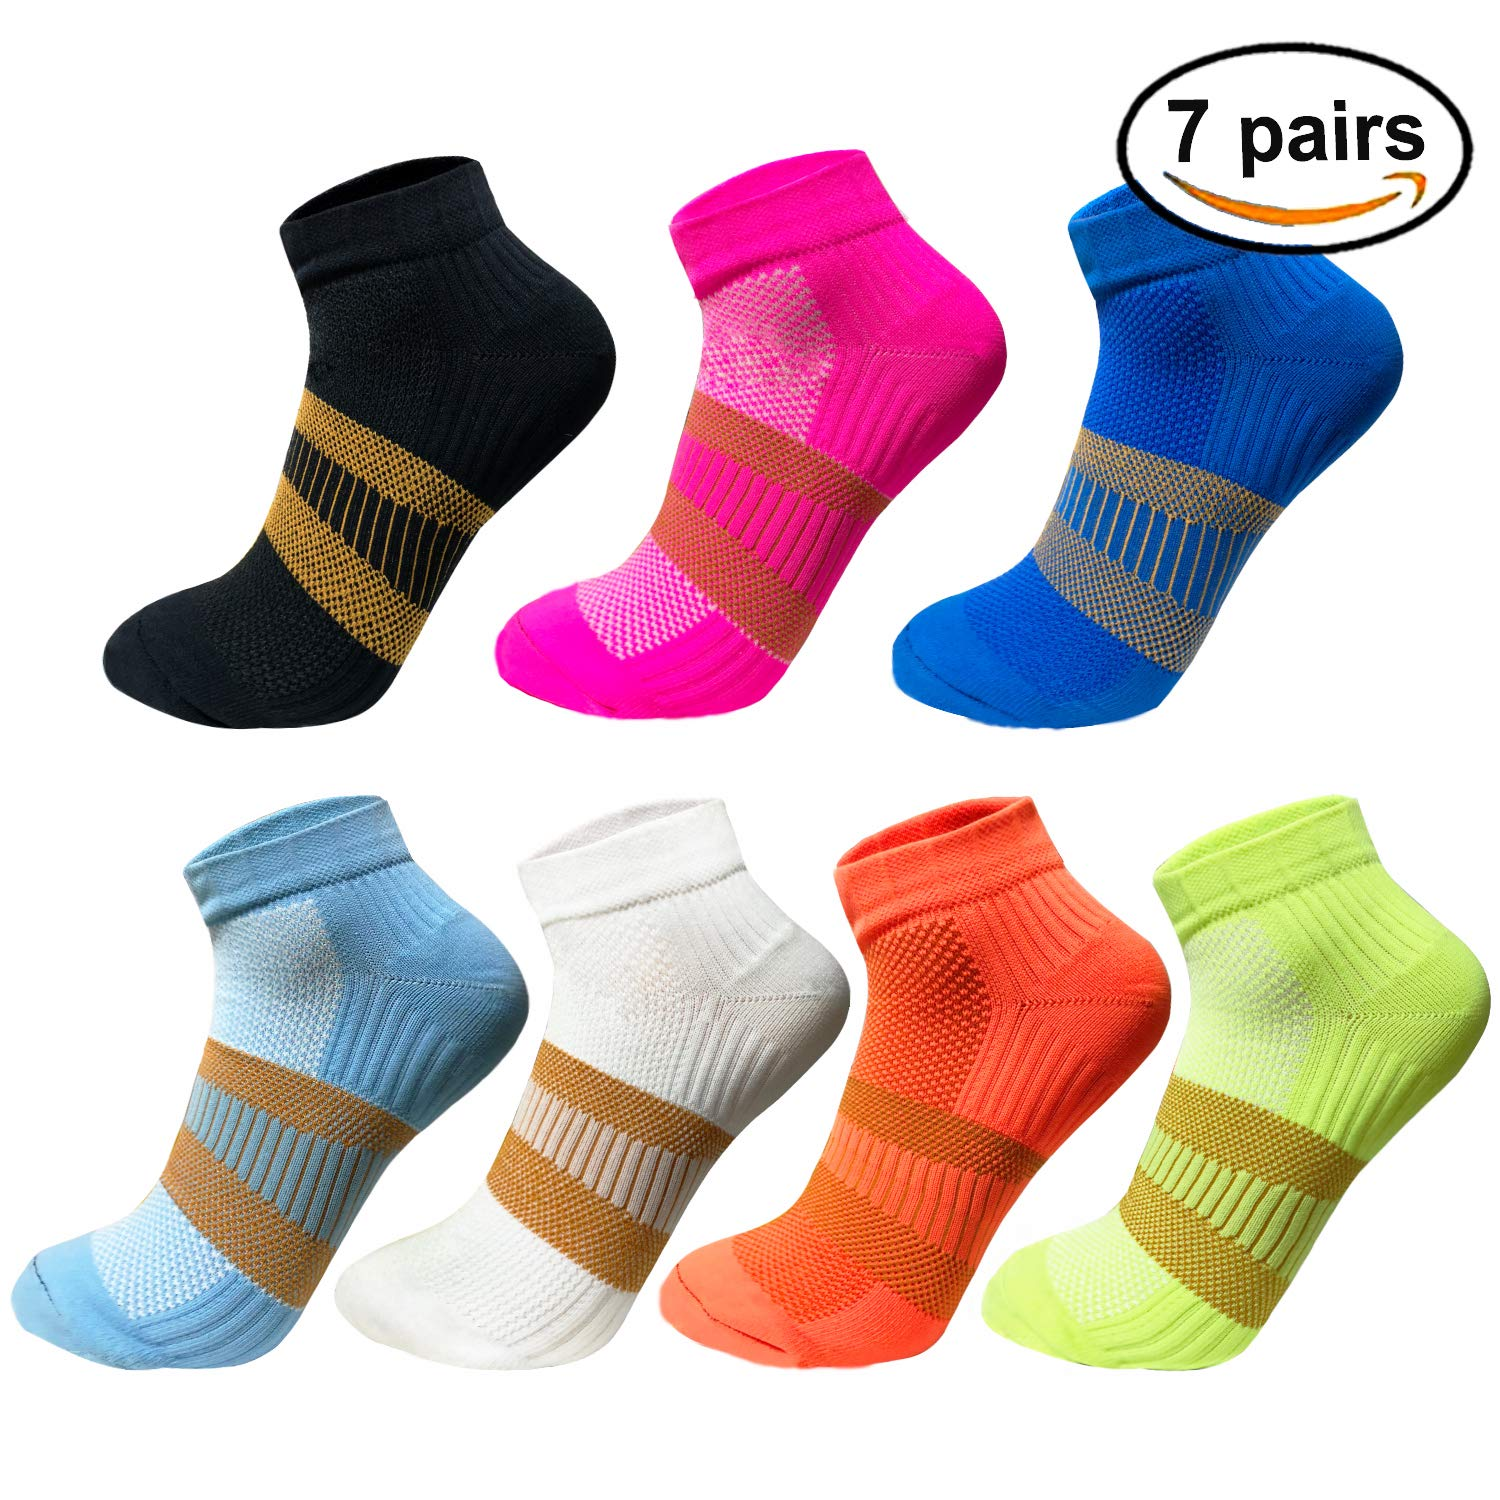 Copper Athletic Compression Socks For Men&Women-Anti bacterial Ankle Sport Socks (Multicoloured, S/M)